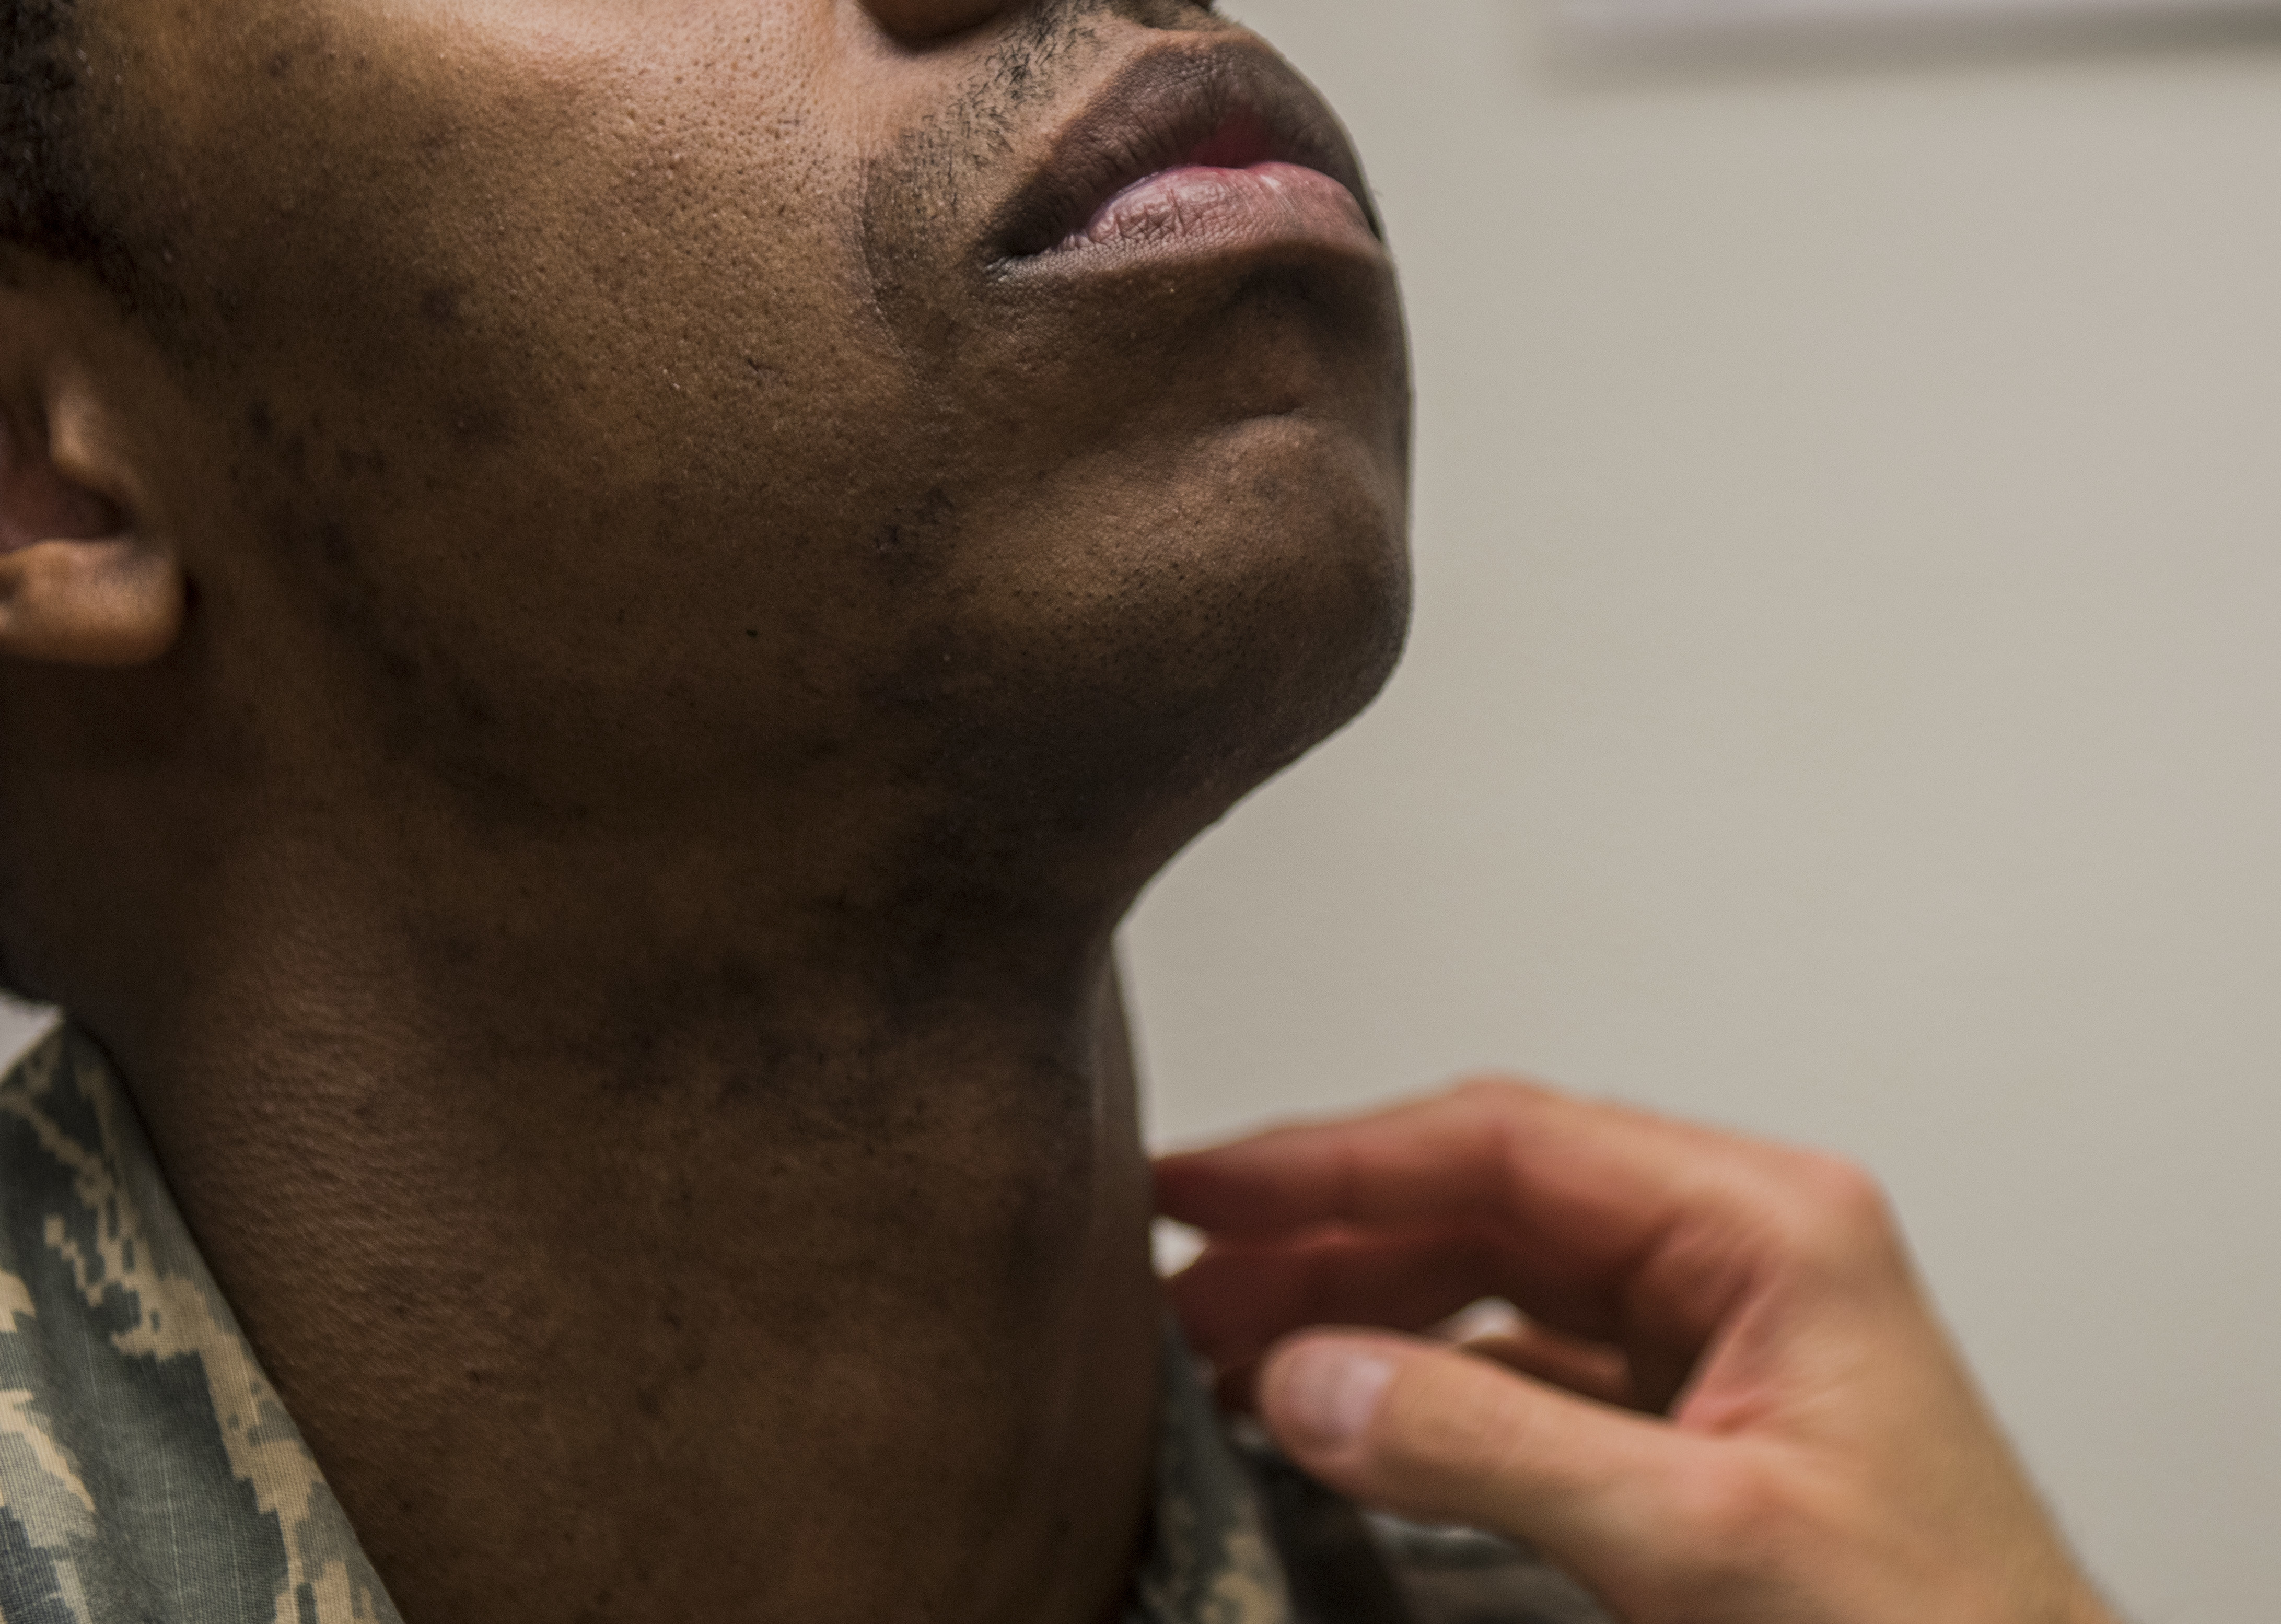 Caption: Staff Sgt. Antoine raises his head as a flight surgeon inspects his neck and face during a 2018 shaving waiver course at Beale Air Force Base in California., Credit: Colville McFee / U.S. Air Force